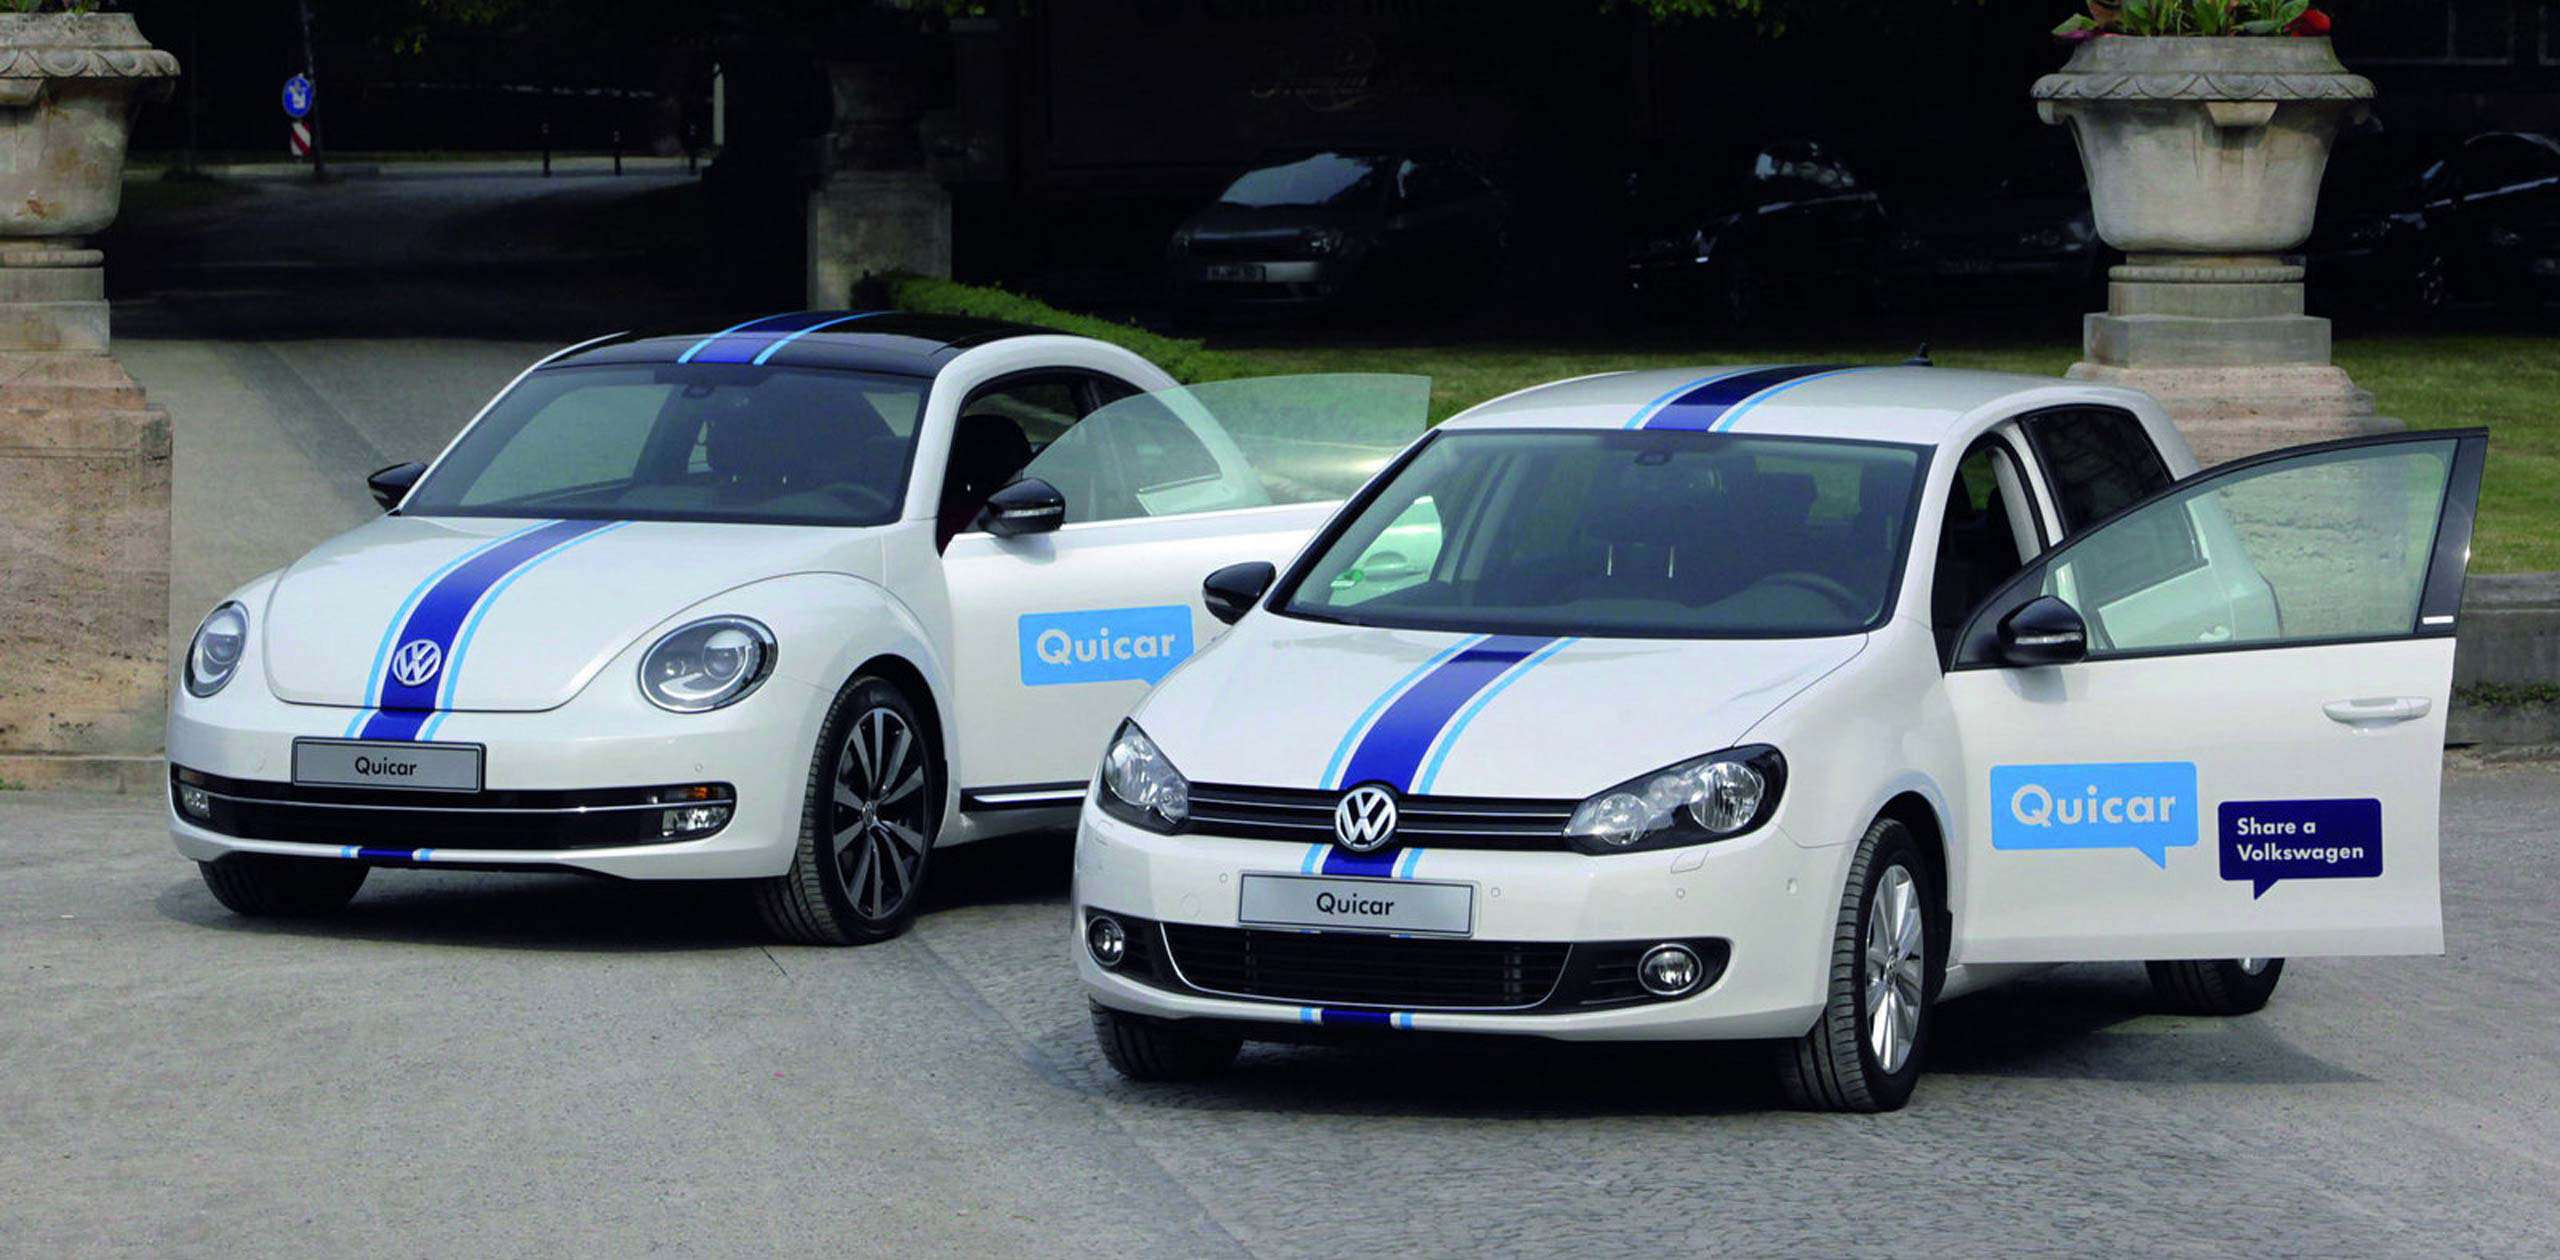 Volkswagen's Quicar is on the road